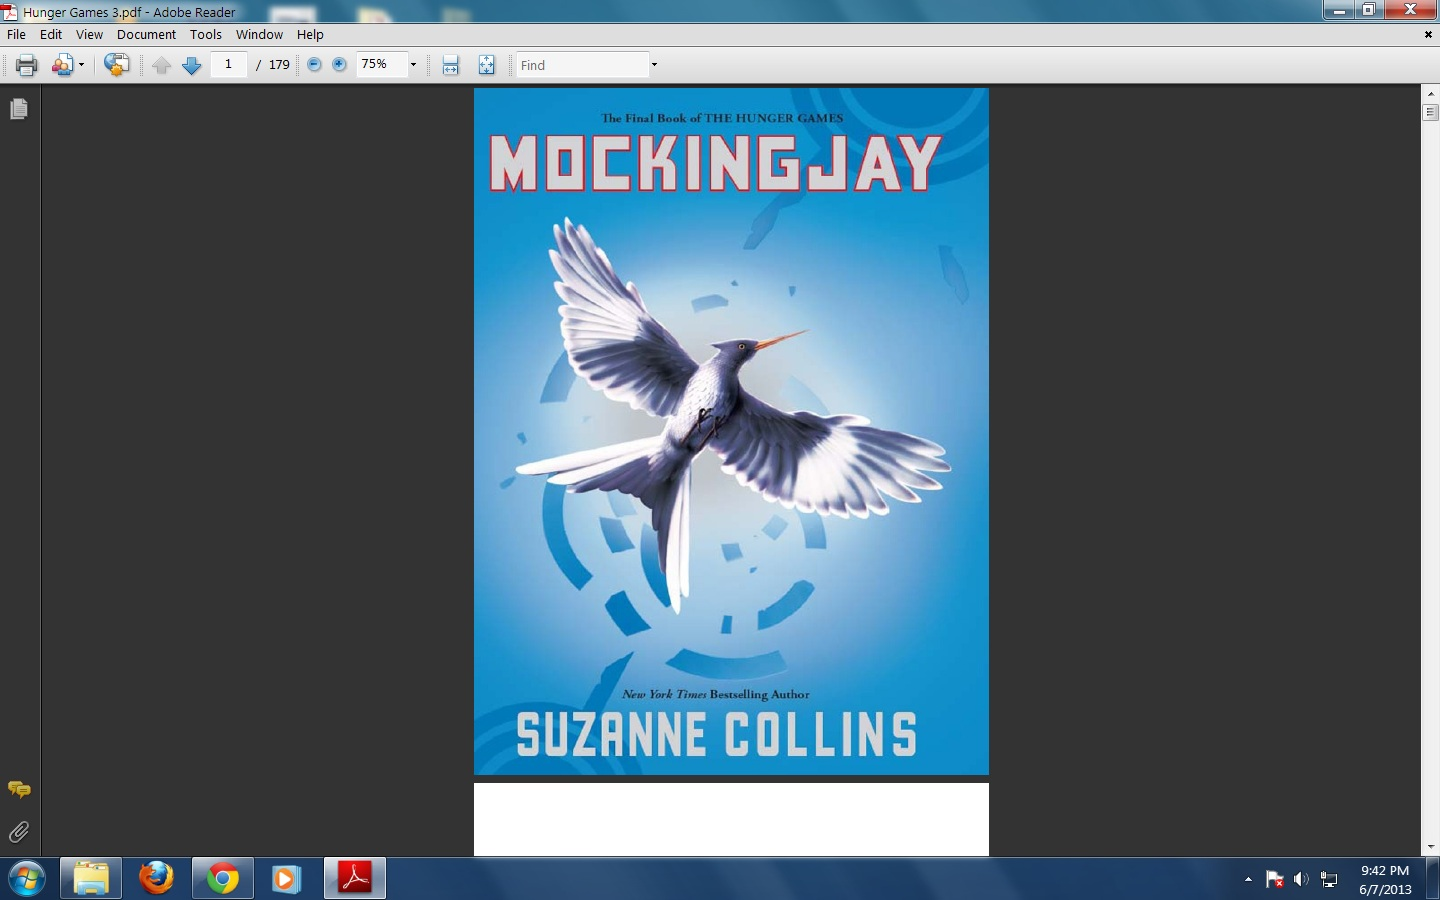 hunger games book report conclusion Mockingjay is a 2010 science fiction novel by american author suzanne collinsit is the last installment of the hunger games, following 2008's the hunger games and 2009's catching firethe book continues the story of katniss everdeen, who agrees to unify the districts of panem in a rebellion against the tyrannical capitol.